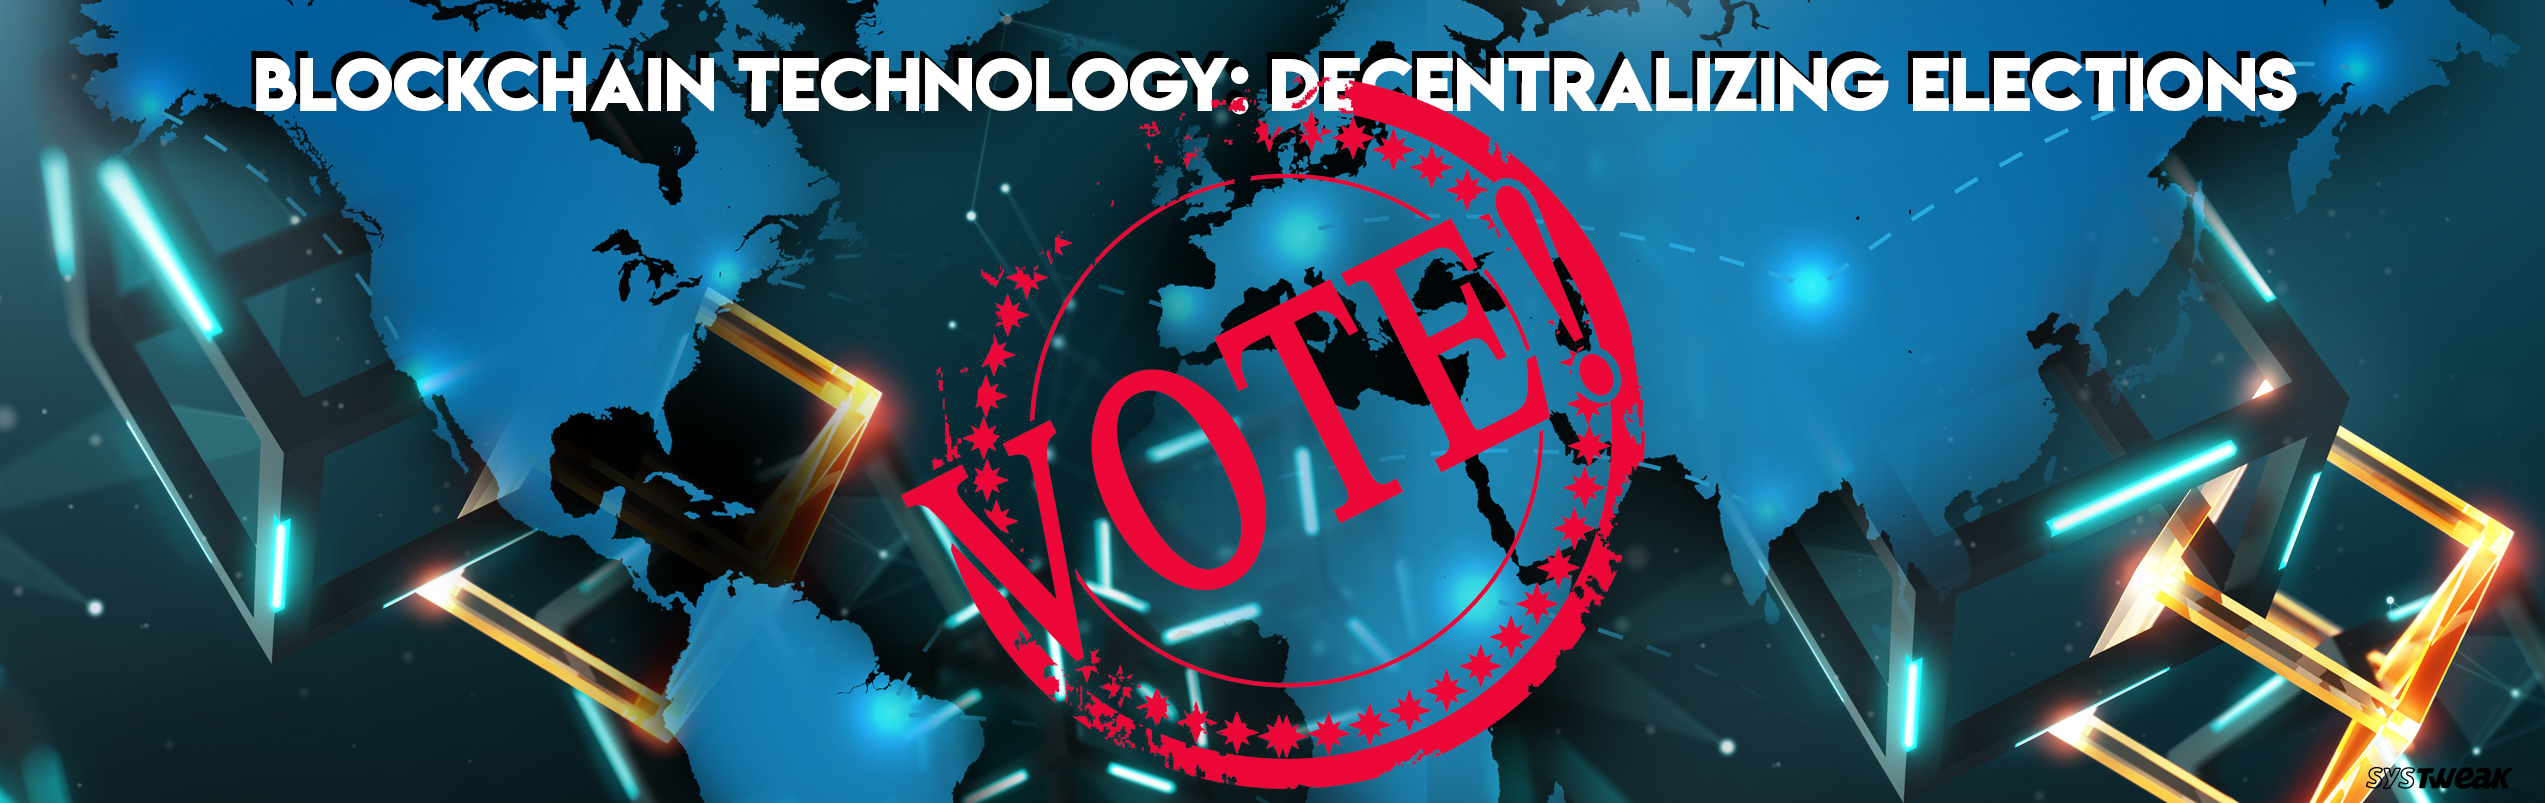 Blockchain Technology: Decentralizing Elections